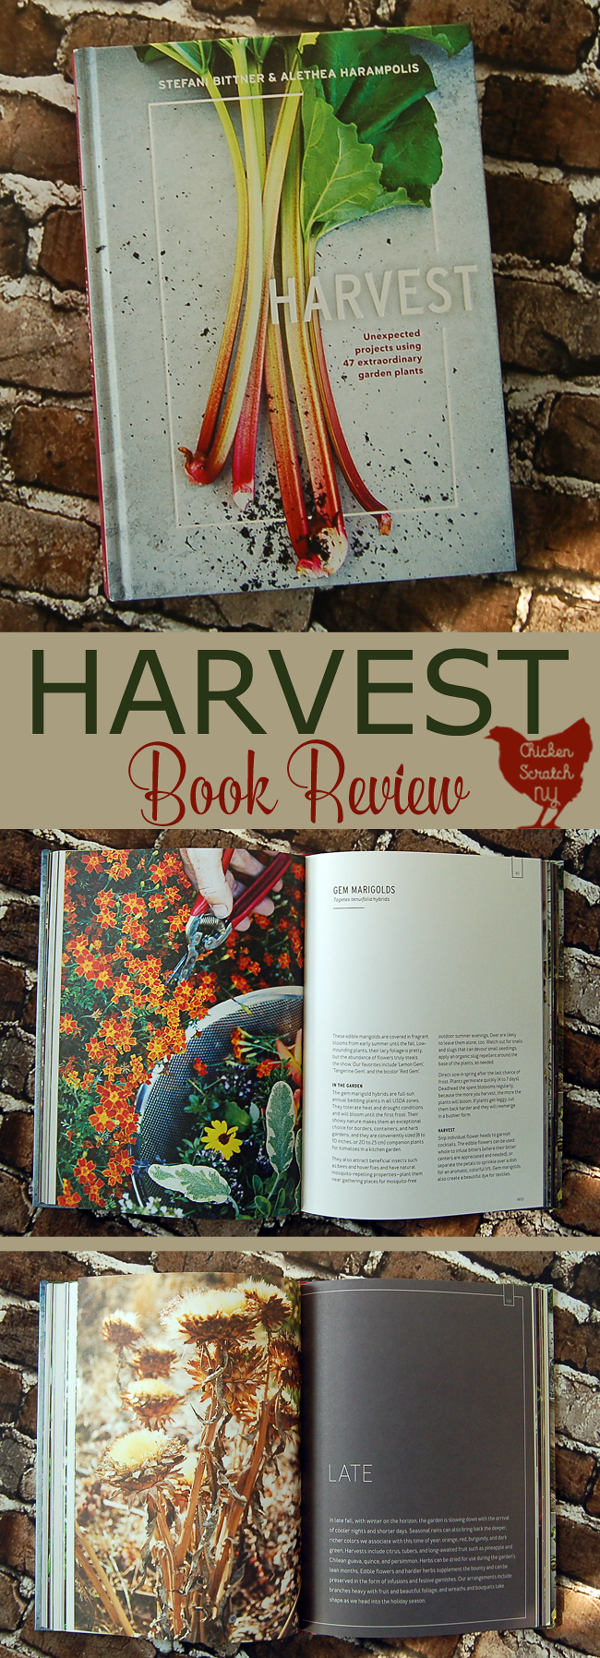 Harvest – Book Review